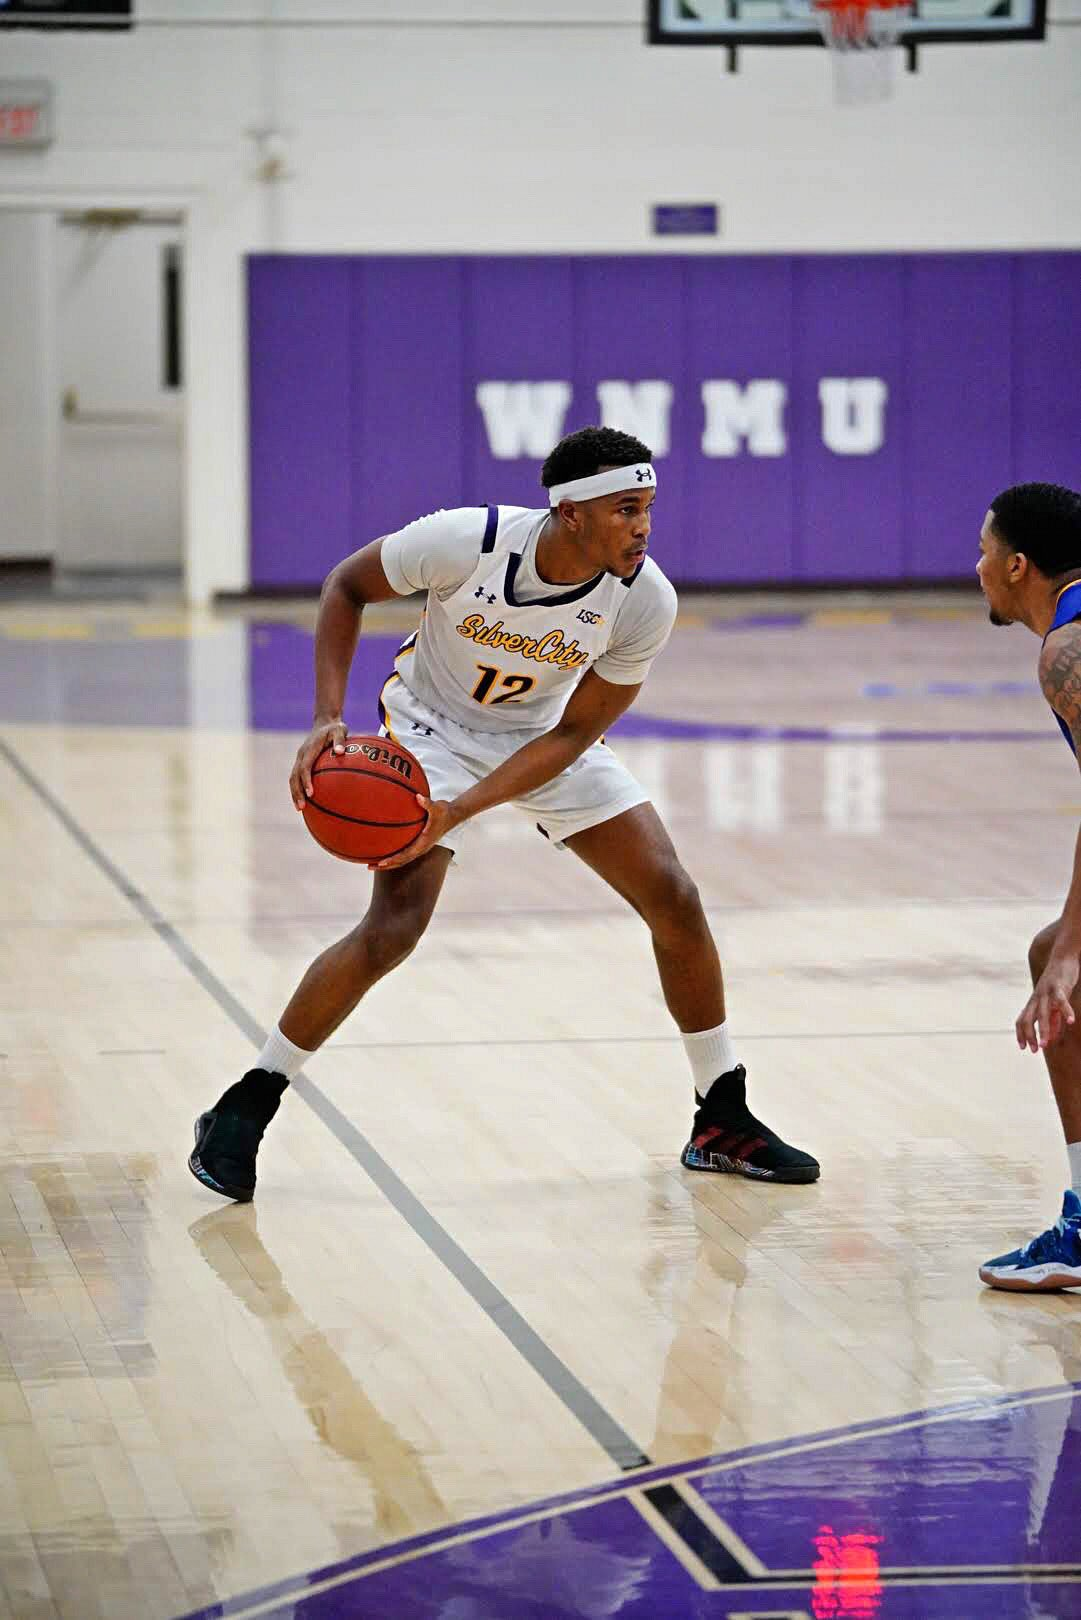 After frustrations and hardships, Elijah Holifield proved himself at Western New Mexico and is prepared to play overseas